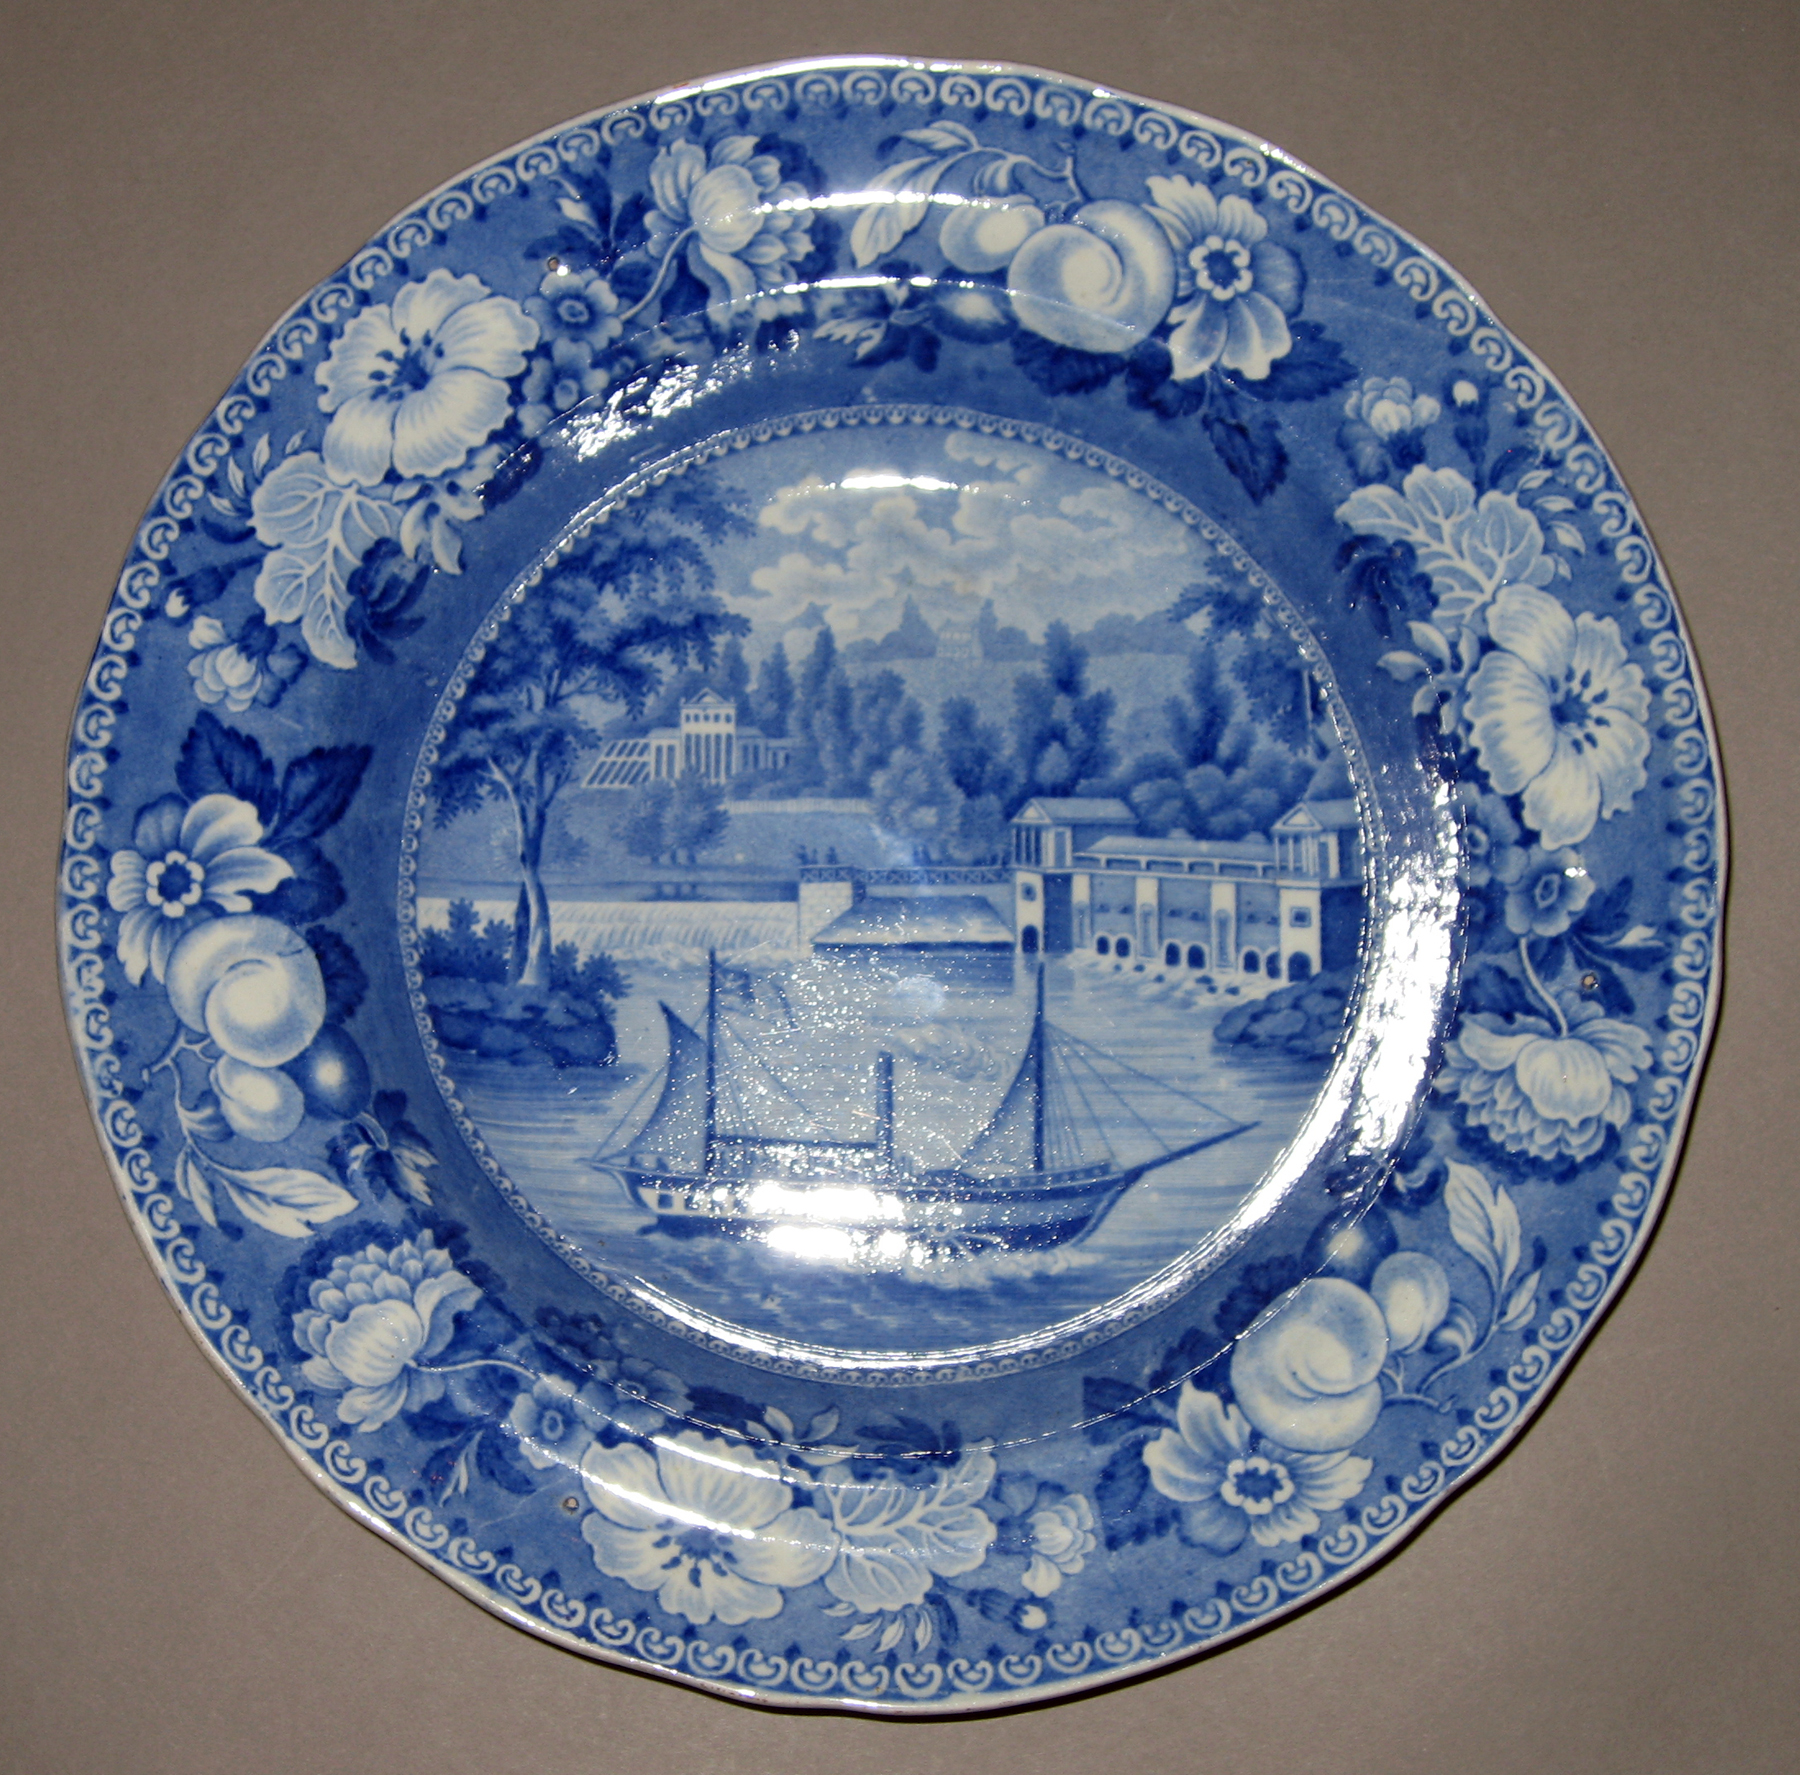 1958.2209.003 Soup plate